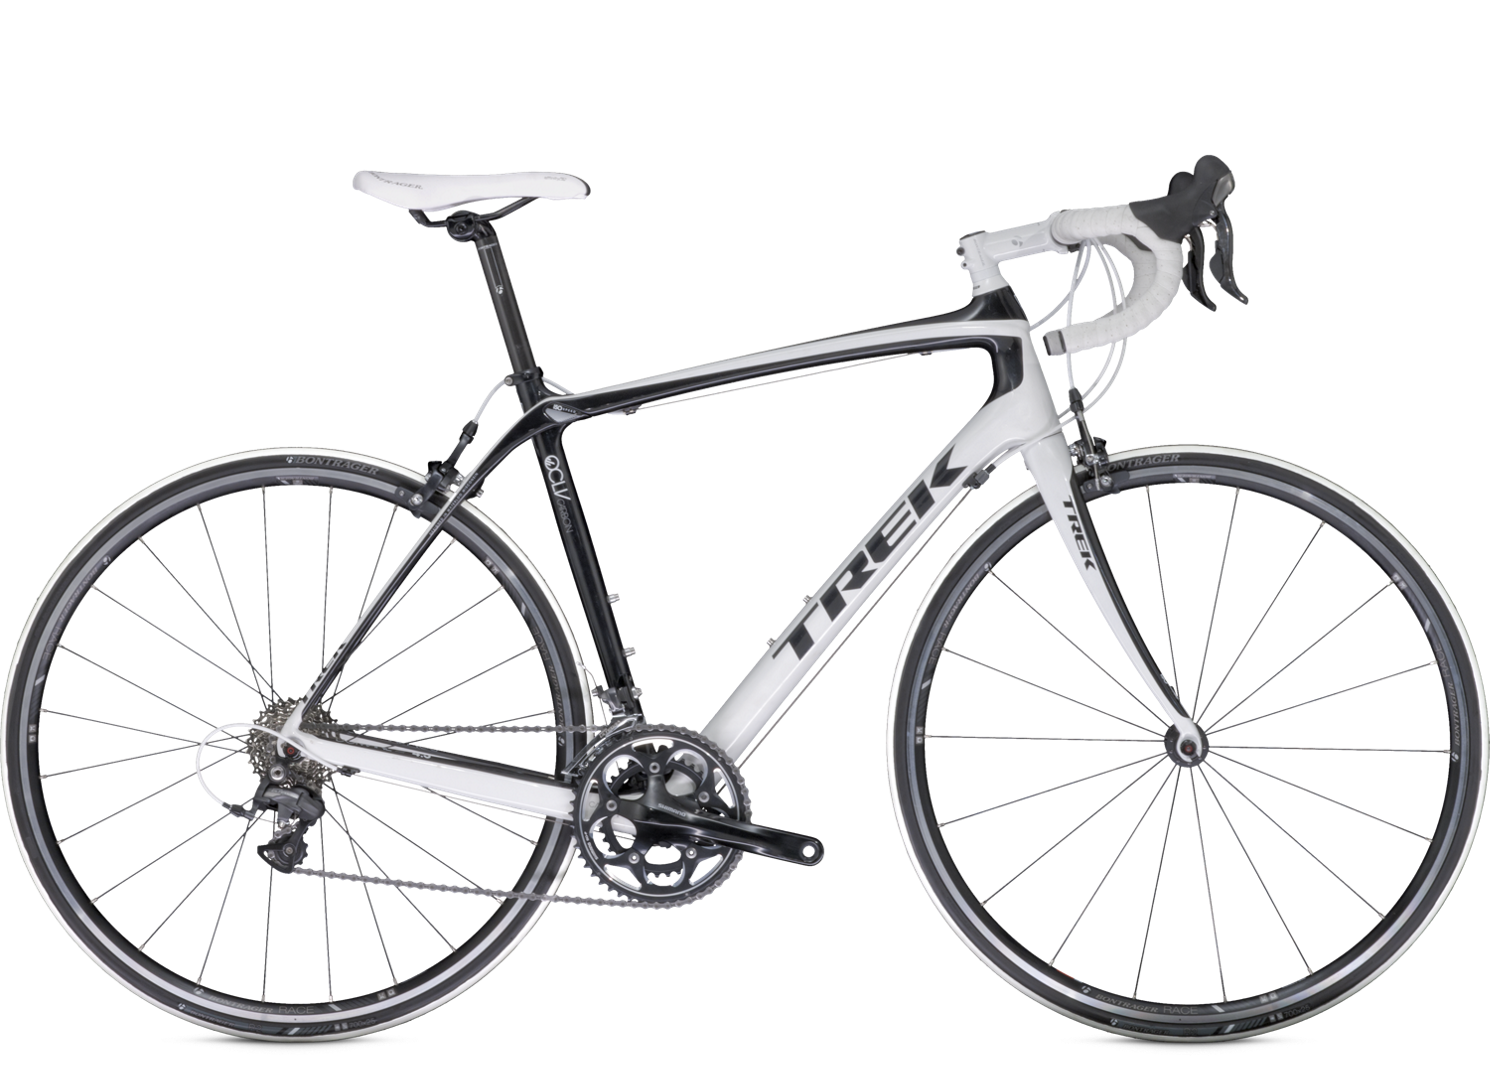 2013 Domane 4 5 (Compact) - Bike Archive - Trek Bicycle